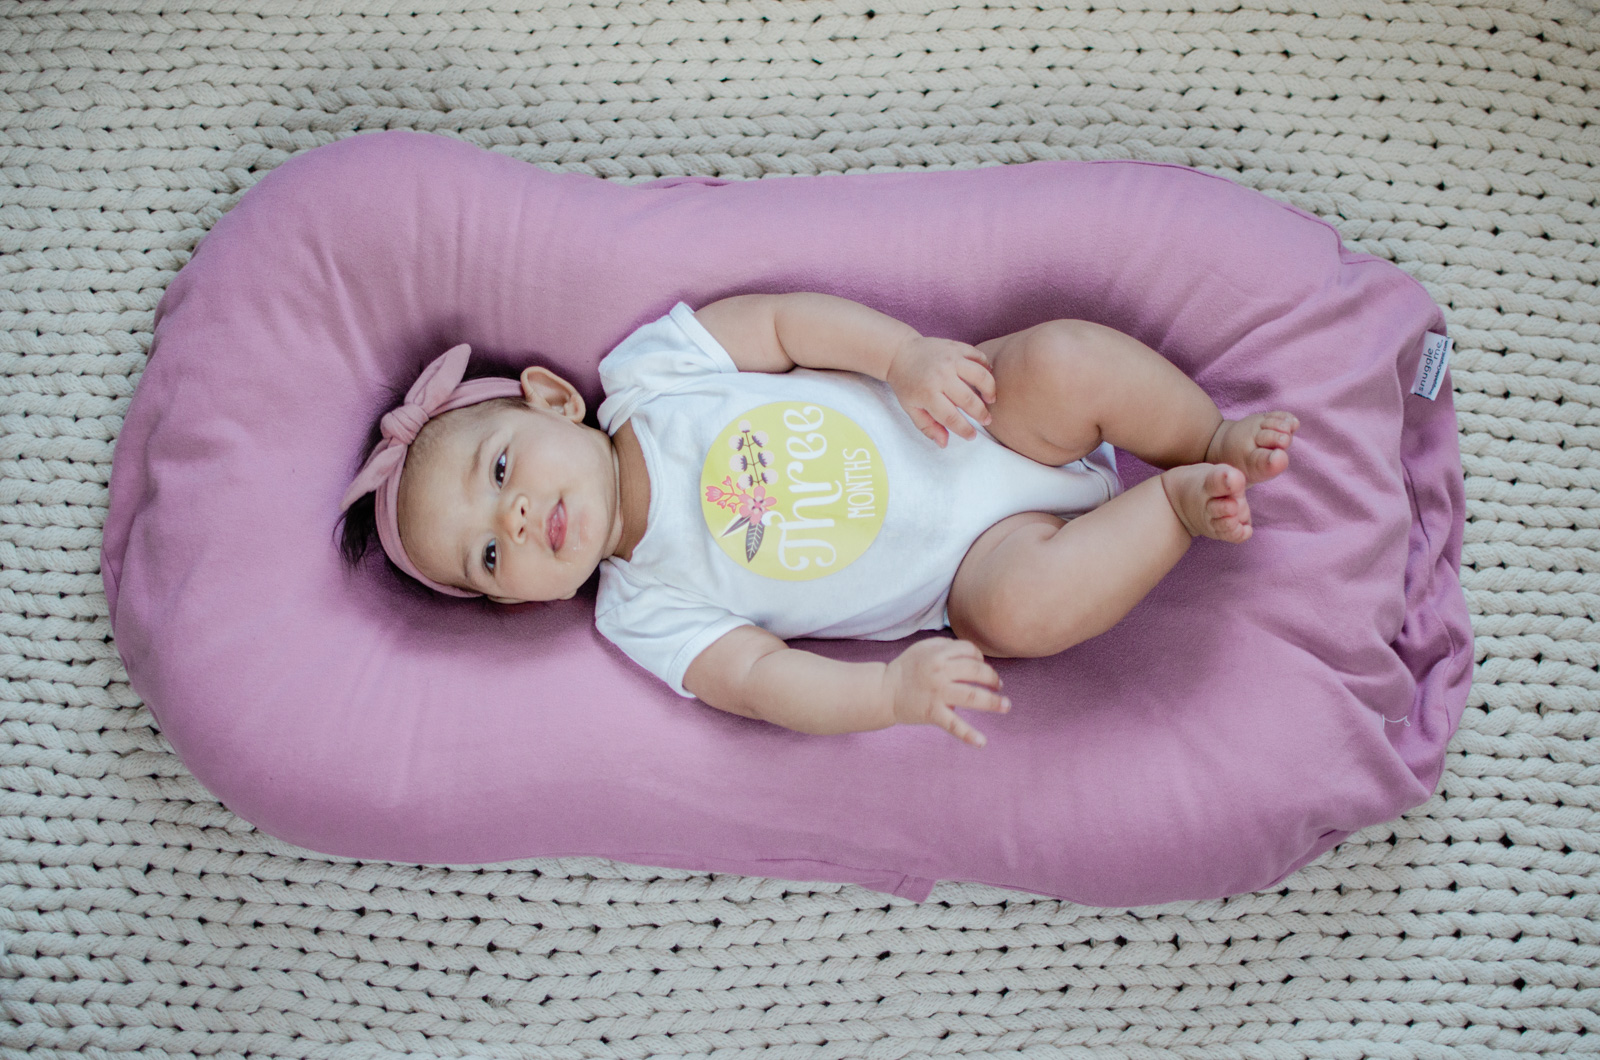 three month update - Eliana's three month old update | bylaurenm.com